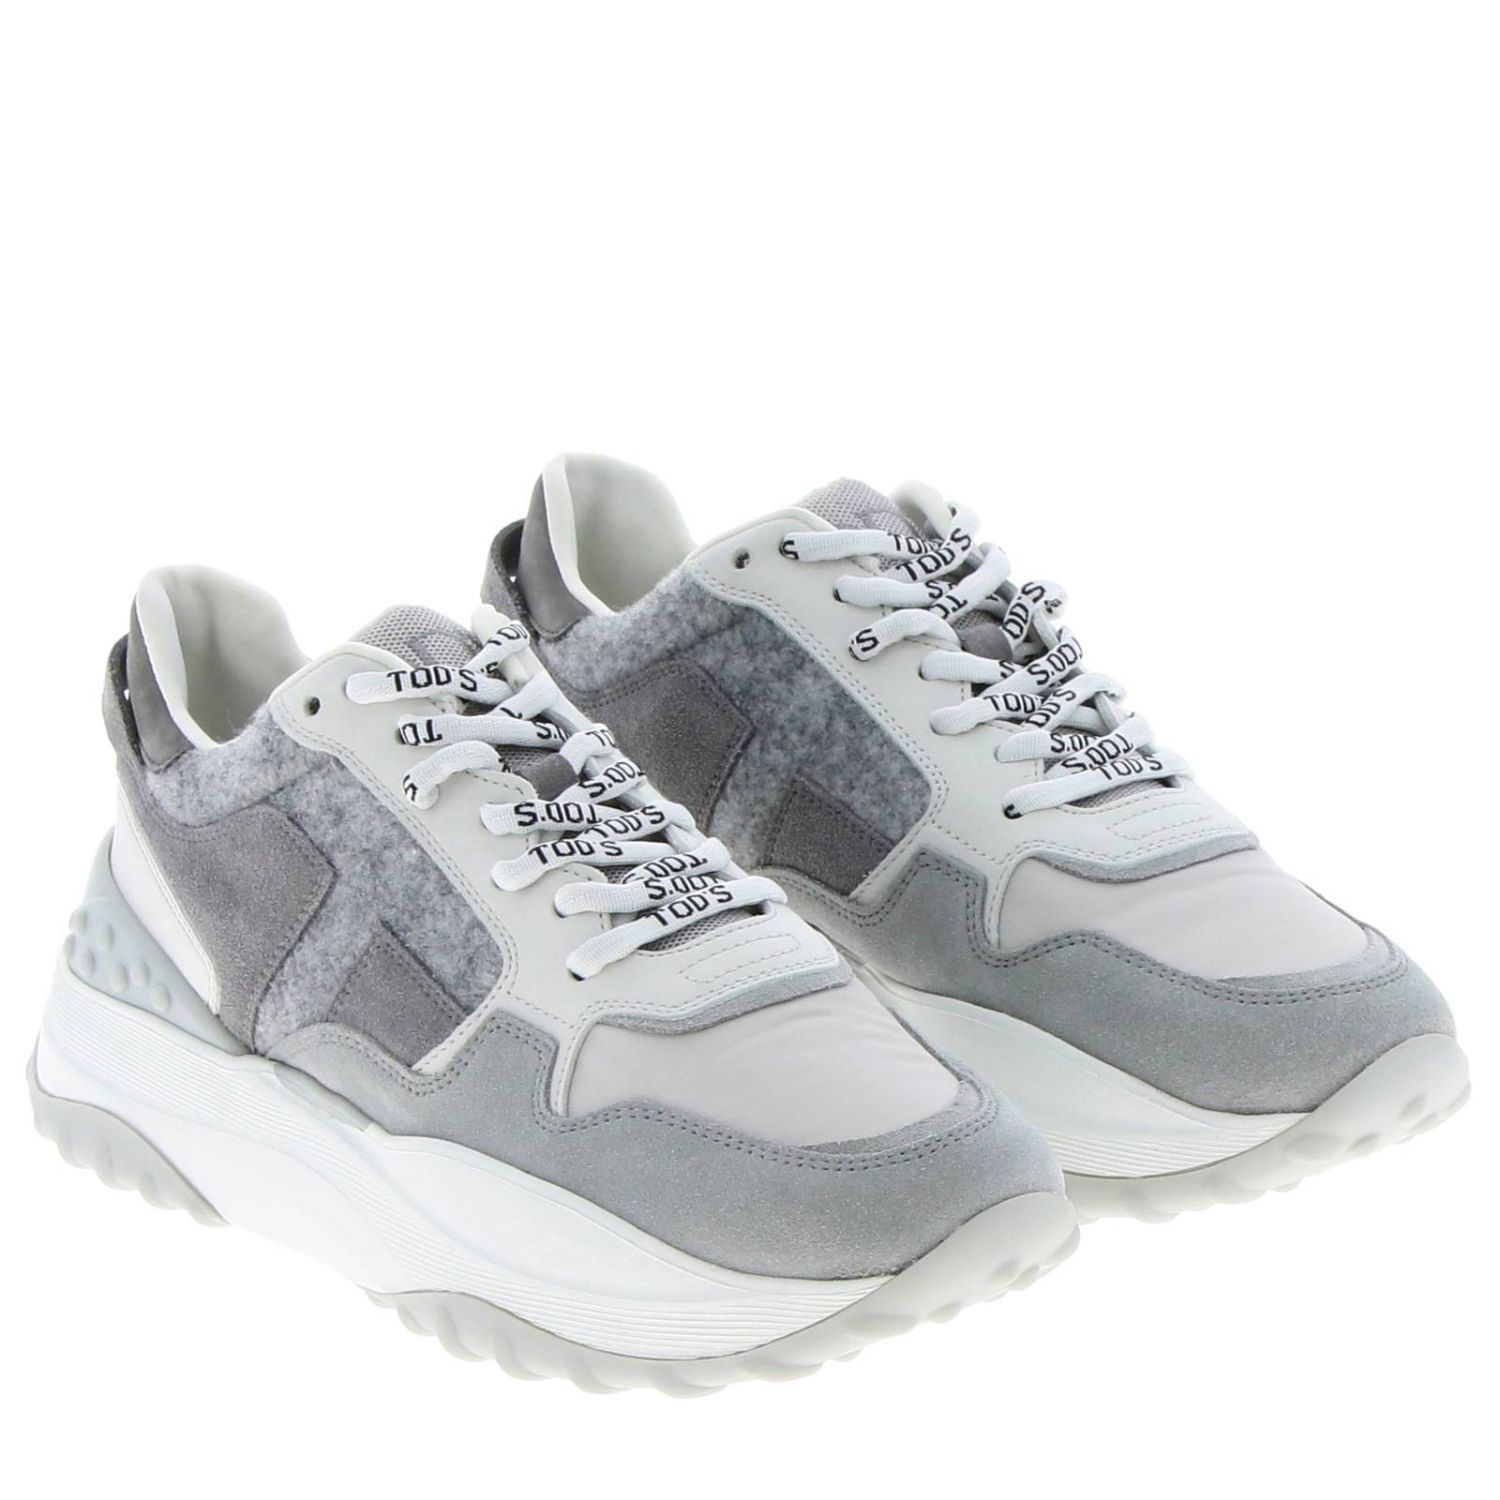 Tod's Sport sneakers in smooth suede and wool with maxi rubber sole grey 2